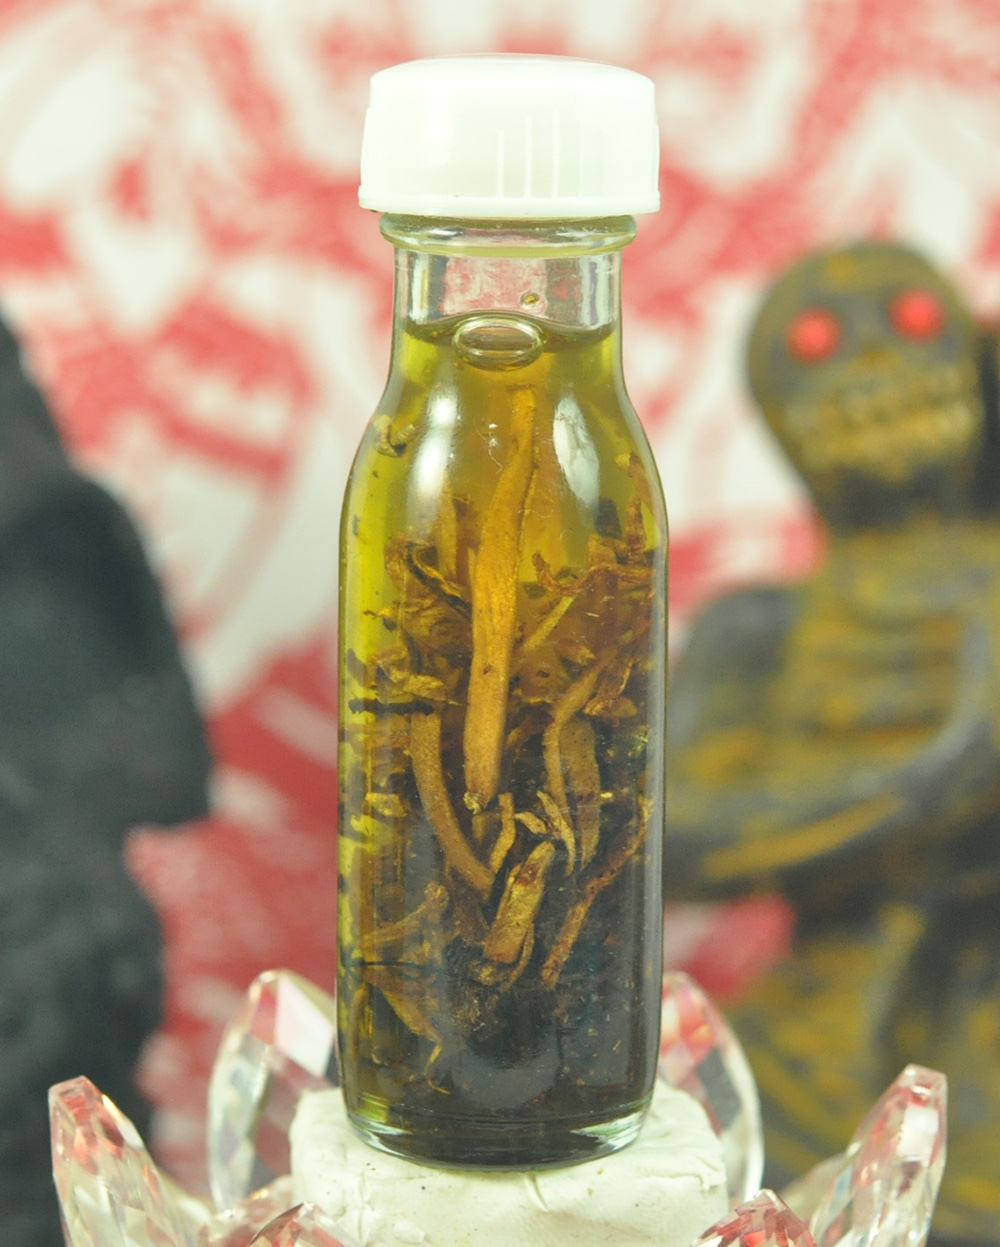 Herbal Love Potion from north of Thailand and Myanmar Nam